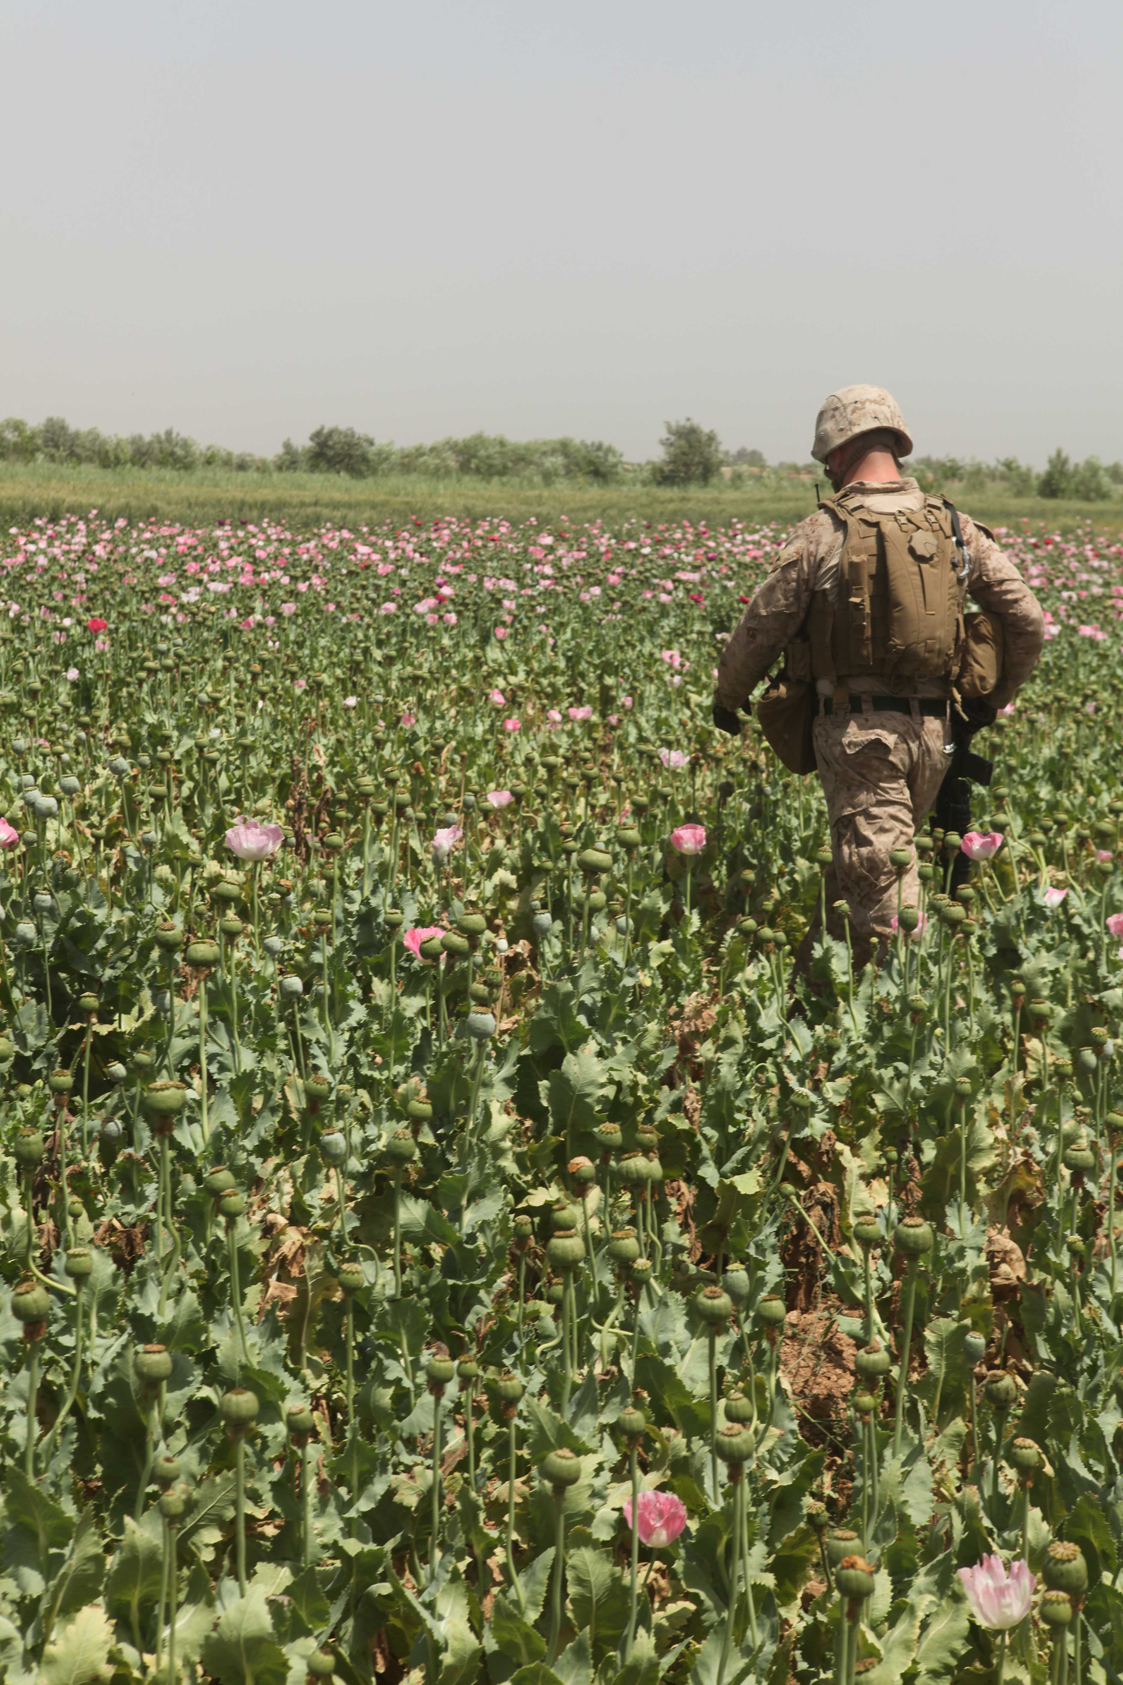 U.S. Occupation Leads to All Time High Afghan Opium Production opium fields3